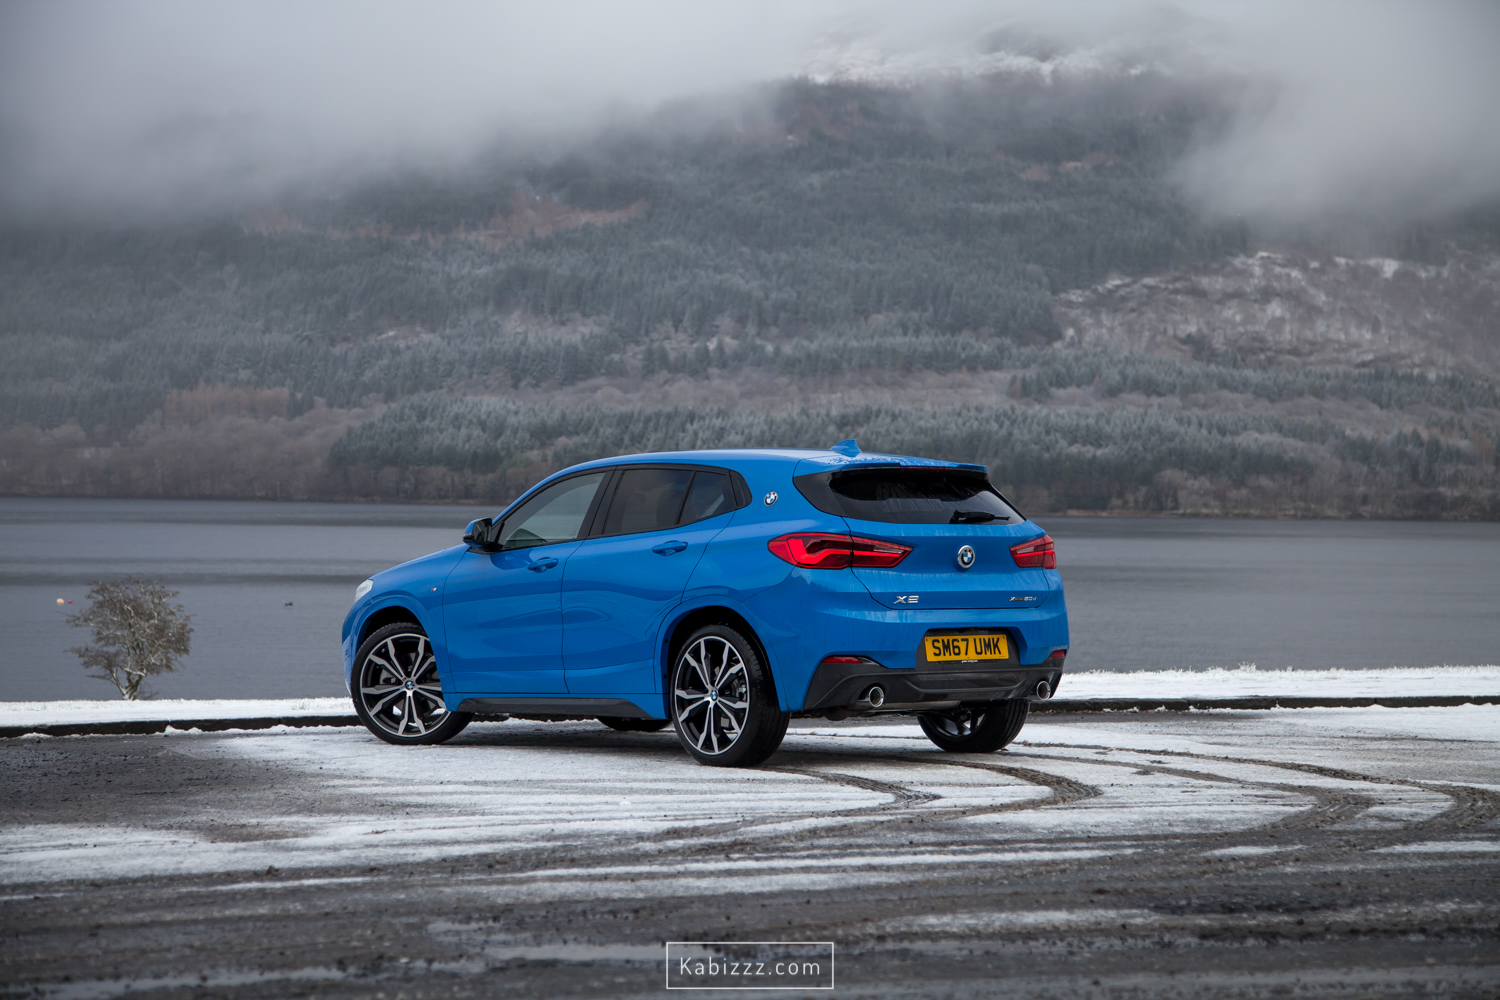 2018_bmw_x2_blue_automotive_photography_kabizzz-4.jpg